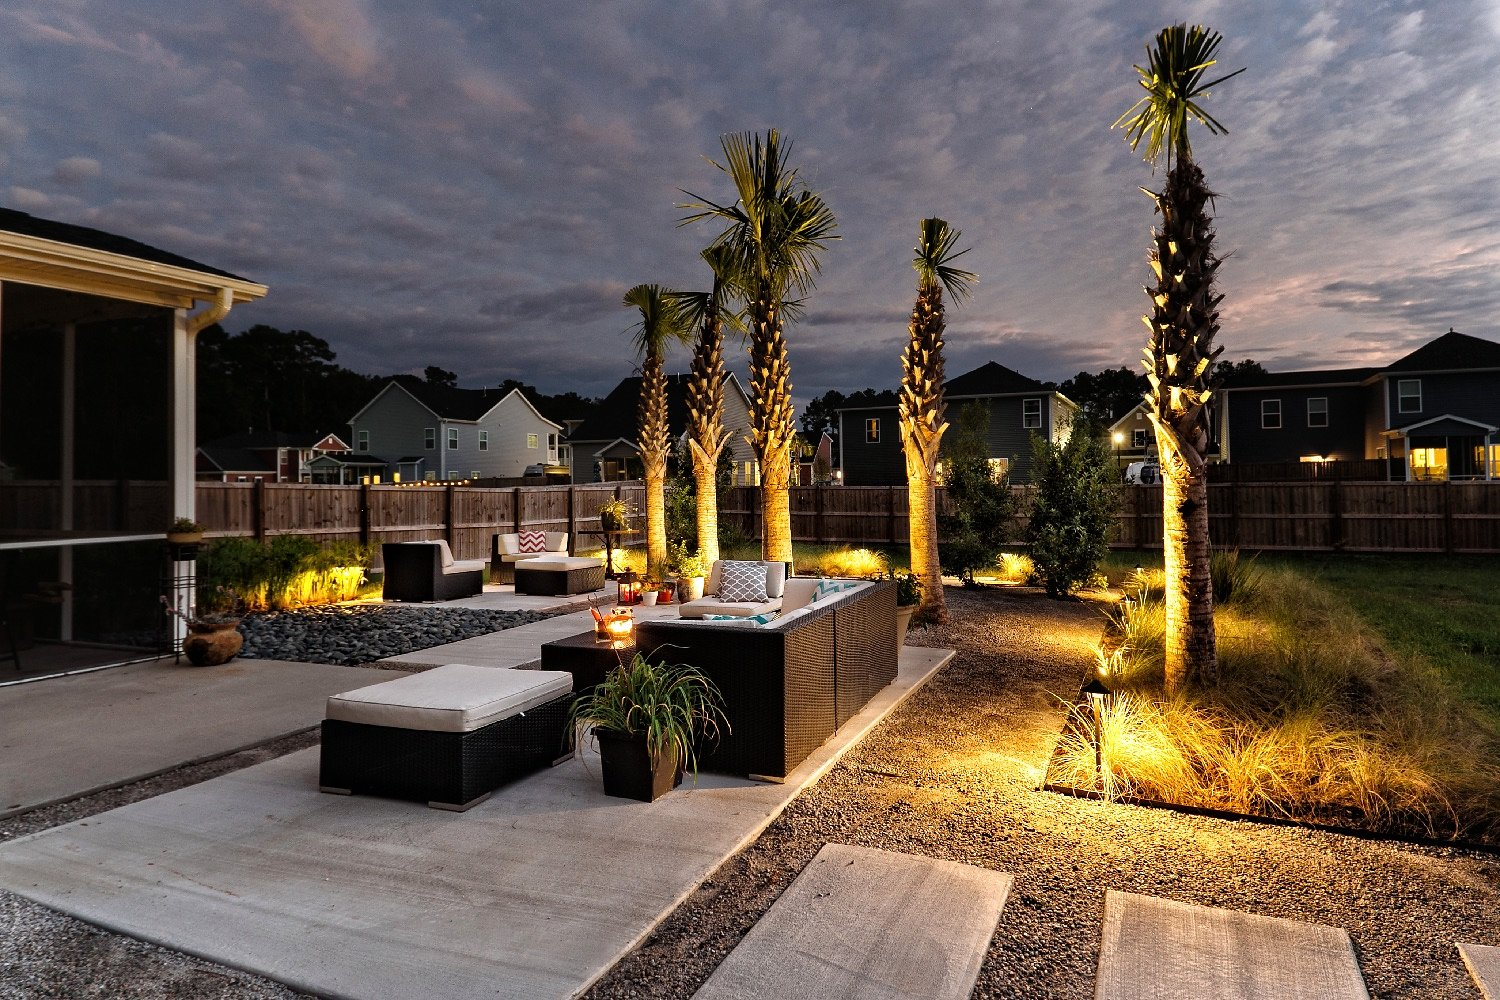 Landscape lighting brings the space to life at night.